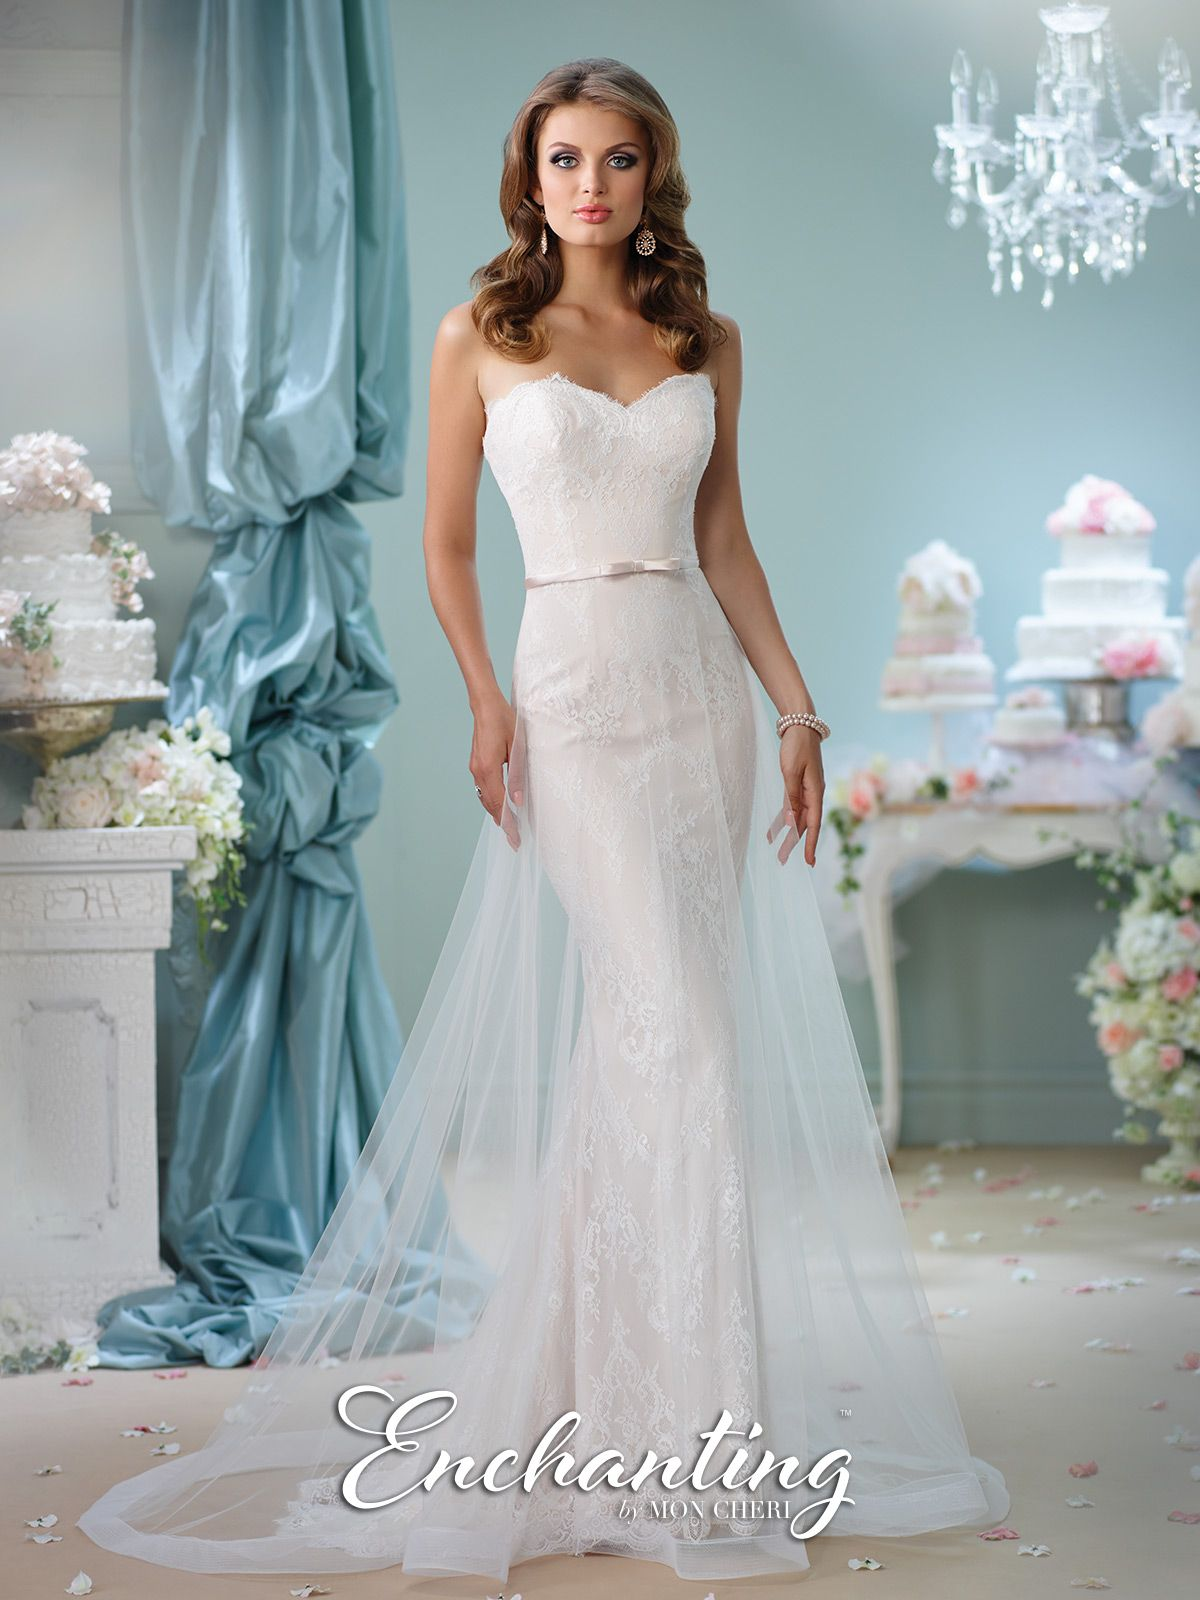 7d609e165c52 116134 Wedding Dress from Enchanting by Mon Cheri. Strapless sweetheart  tulle and lace slim A-line cage gown, natural waist belt with center bow,  ...